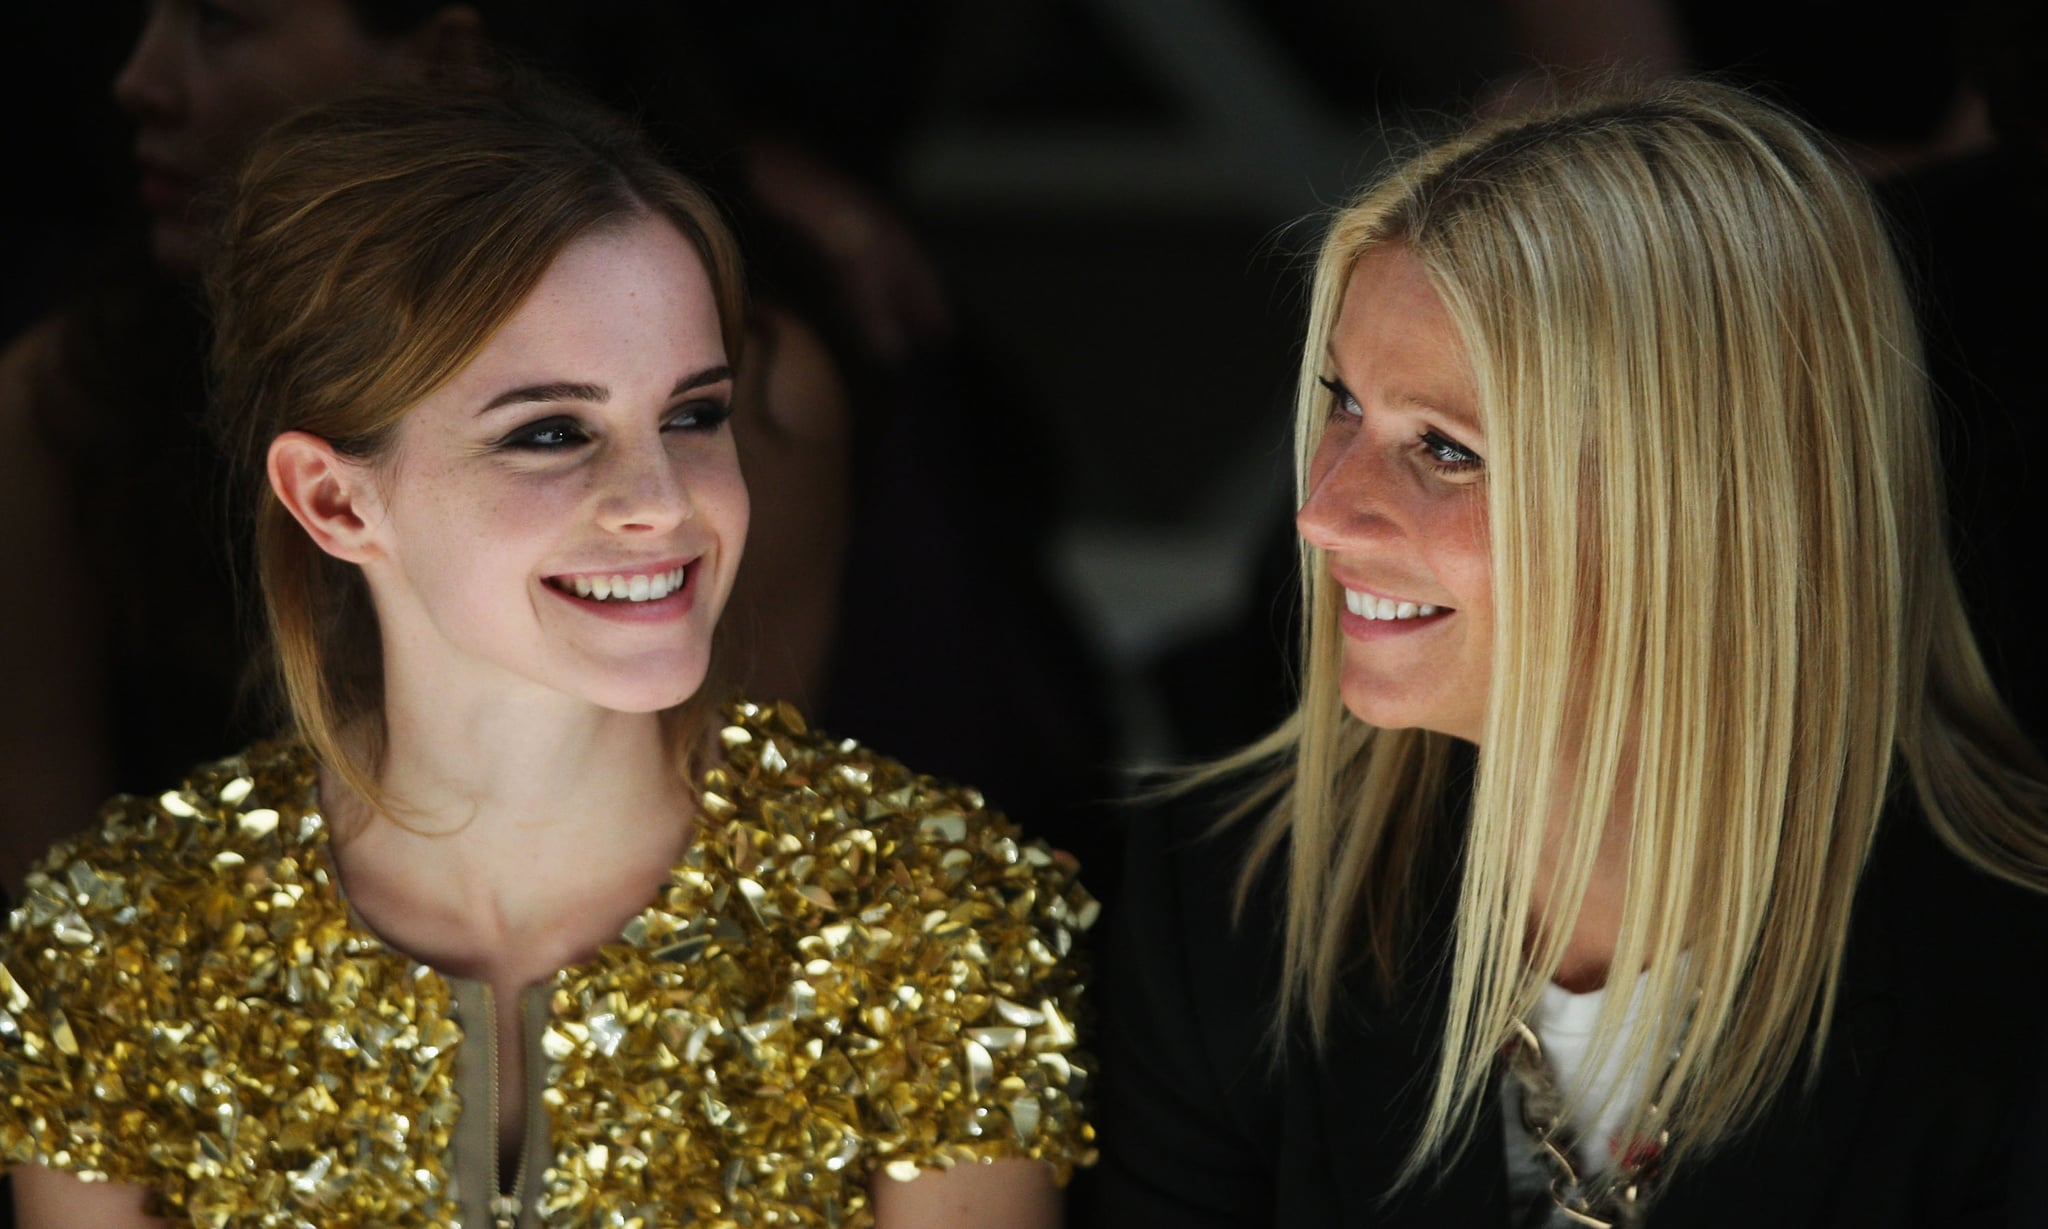 She sat front row with Emma Watson at the Burberry runway show during London Fashion Week in September 2009.